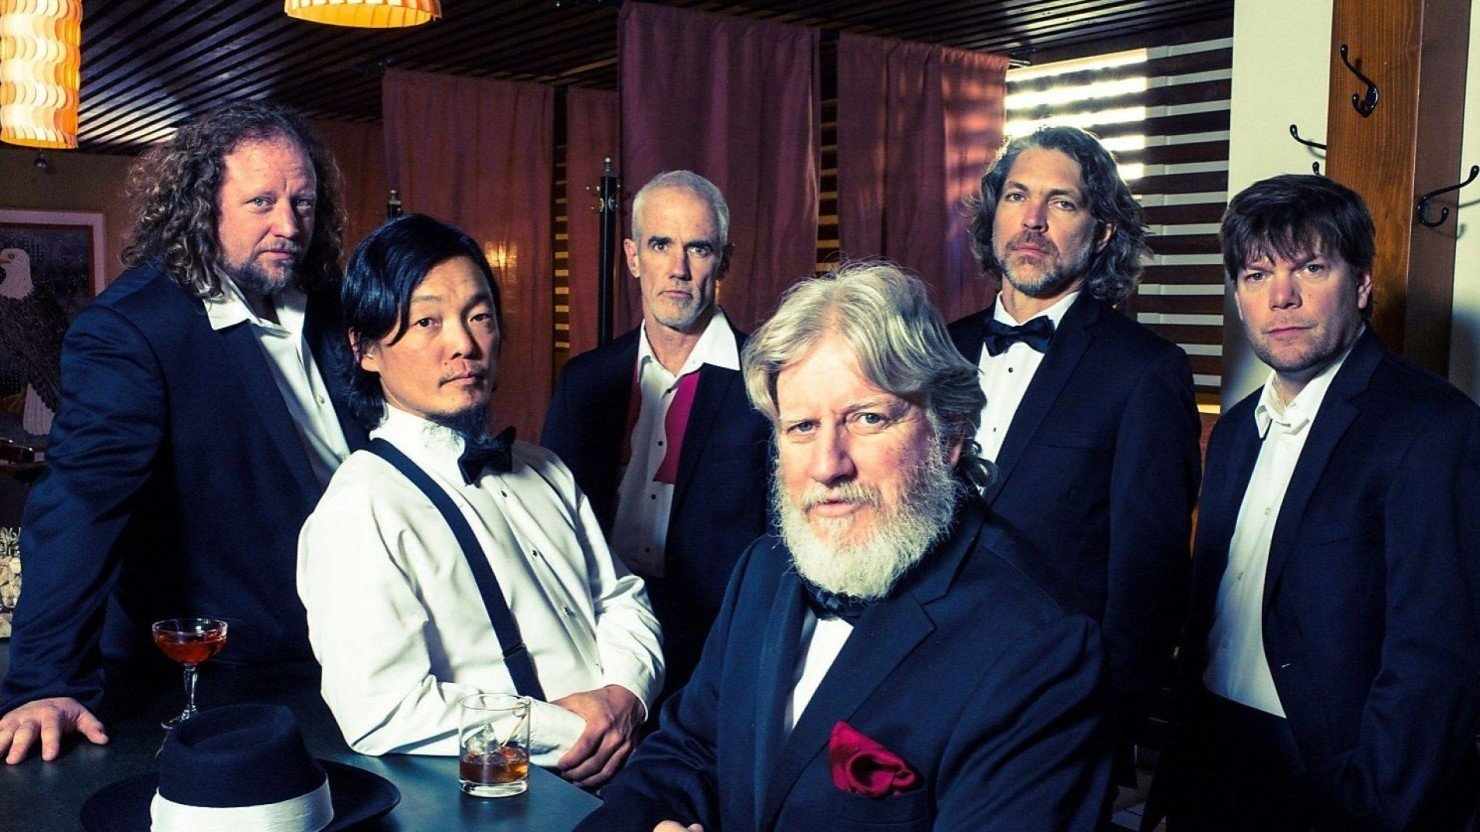 The Sting Cheese Incident announce 2016 tour dates. Photo by: The String Cheese Incident